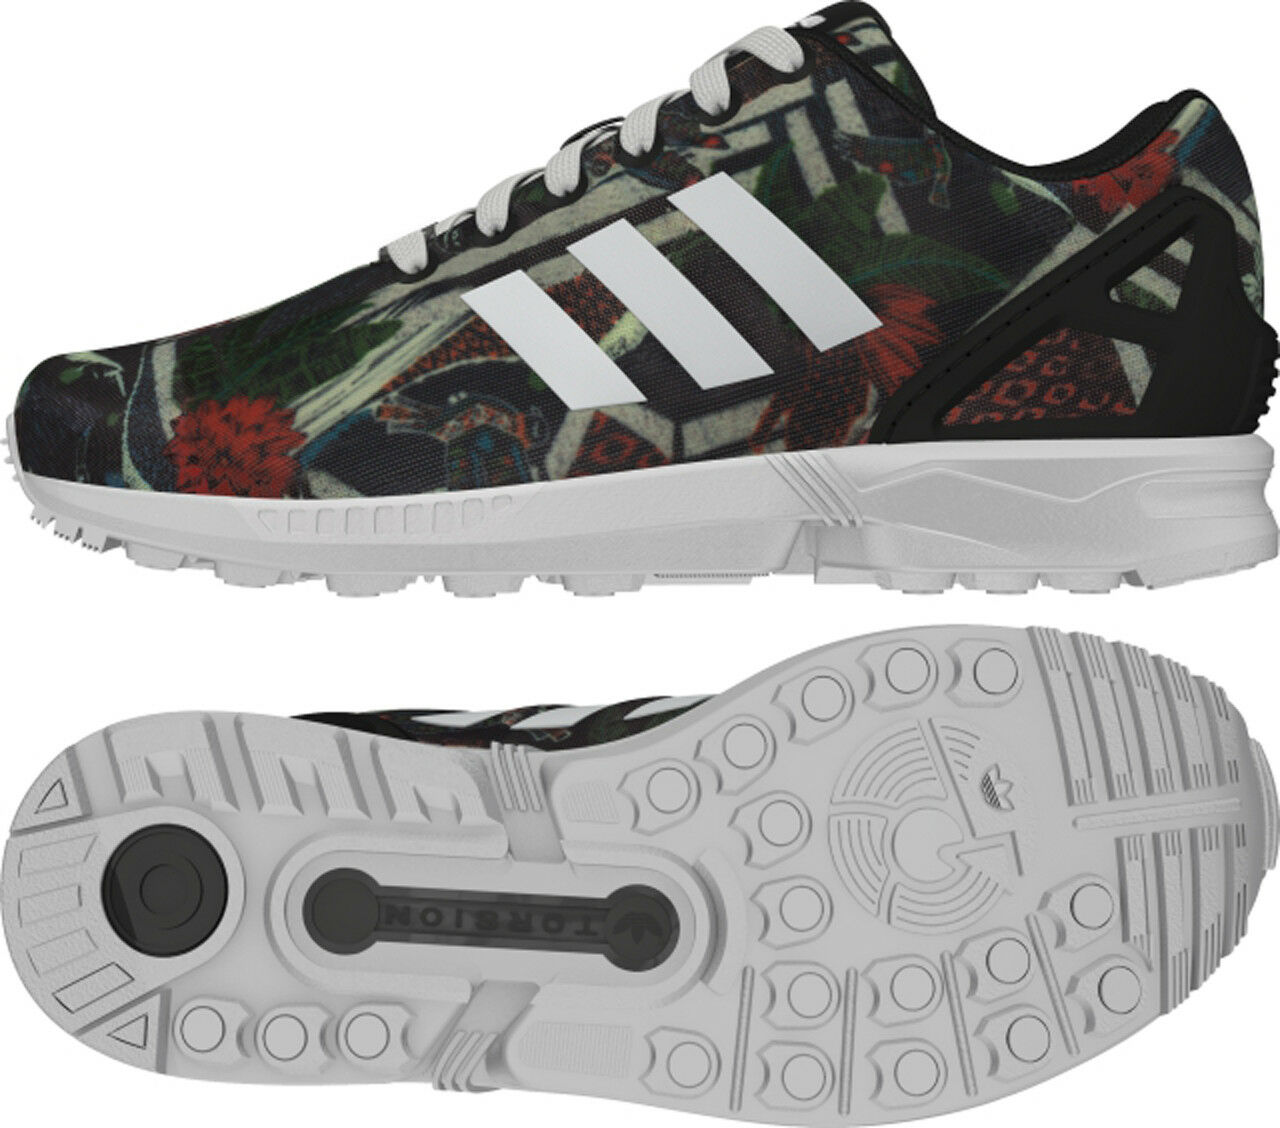 Adidas Originals ZX Flux negros señora b25484 the farm Zapatos señora negros ee2a17